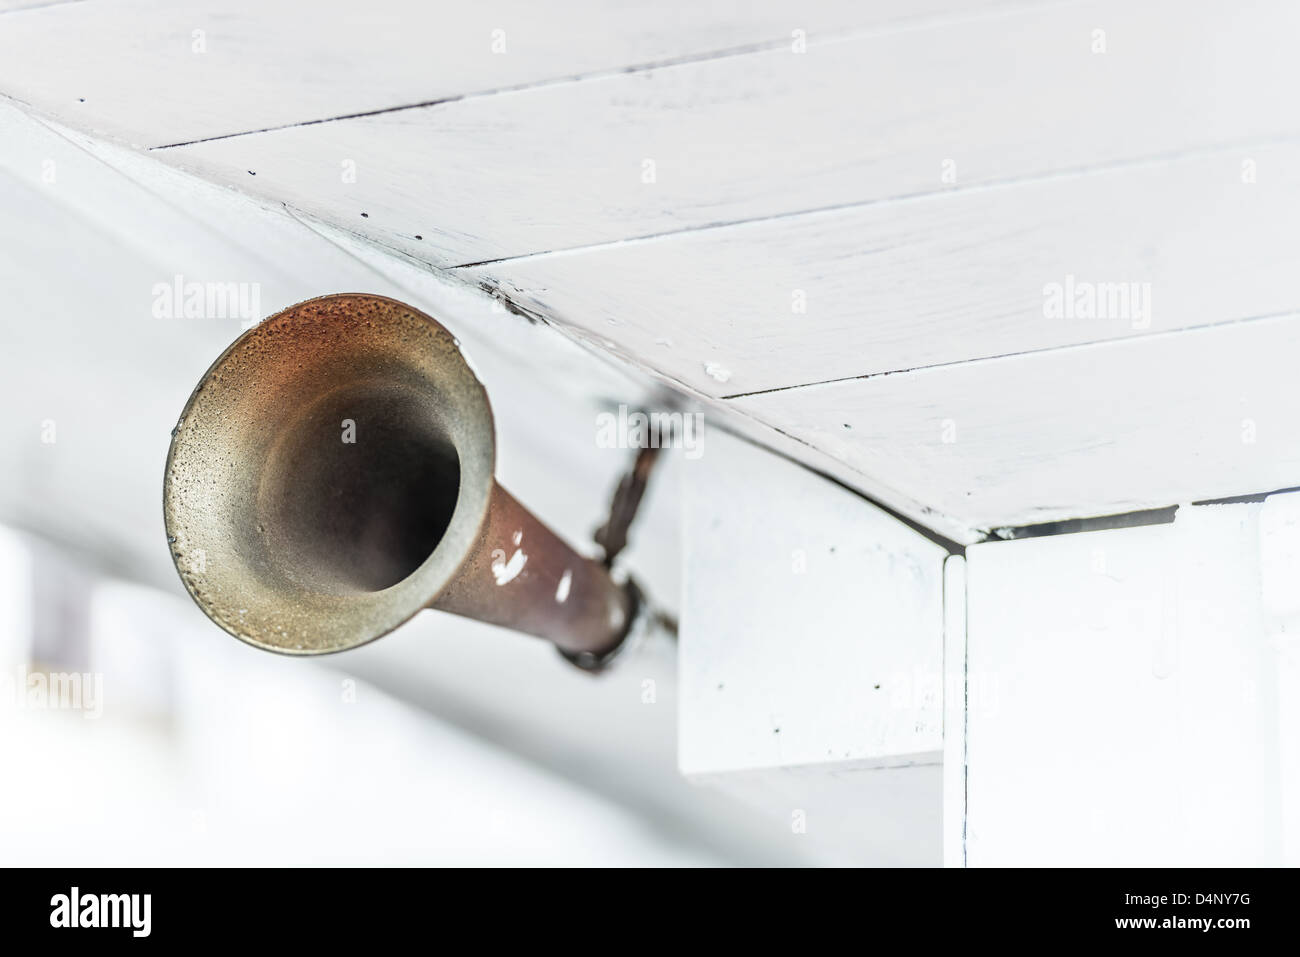 Close up view of old grungy metal horn on ship under old white wooden ceiling. Sound signal during sea travelling. - Stock Image